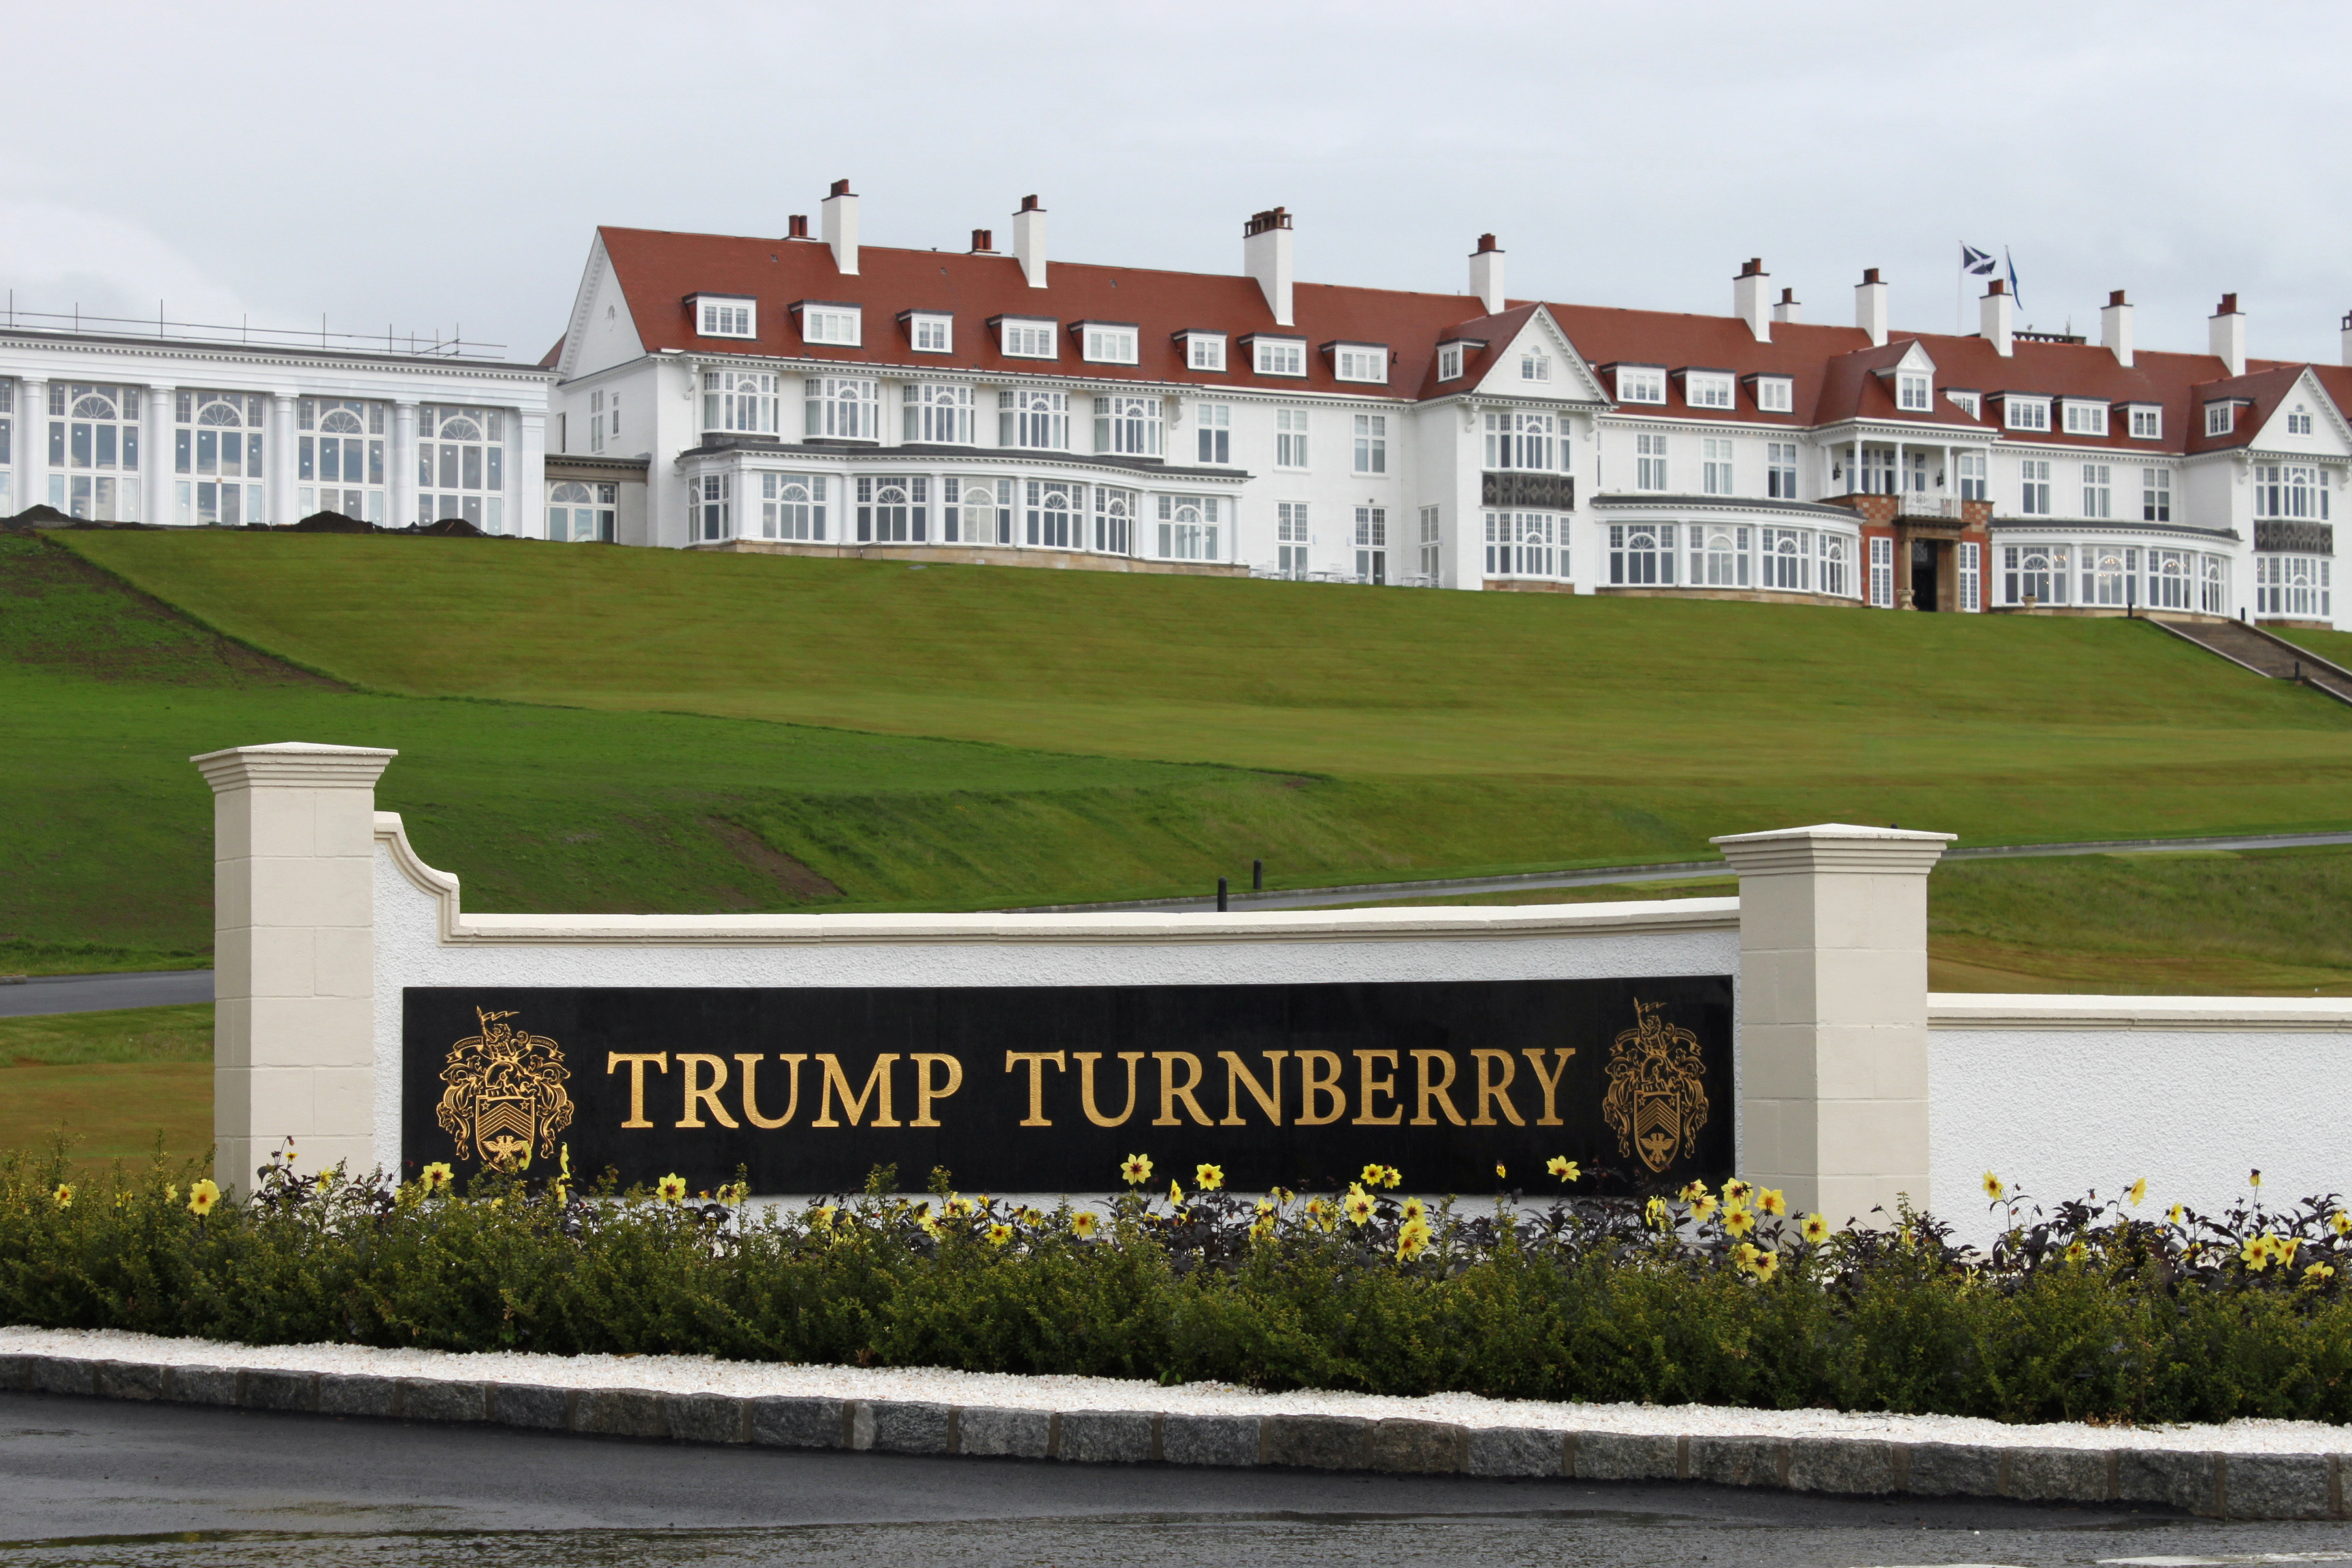 The Trump Turnberry golf resort in Turnberry, Scotland.